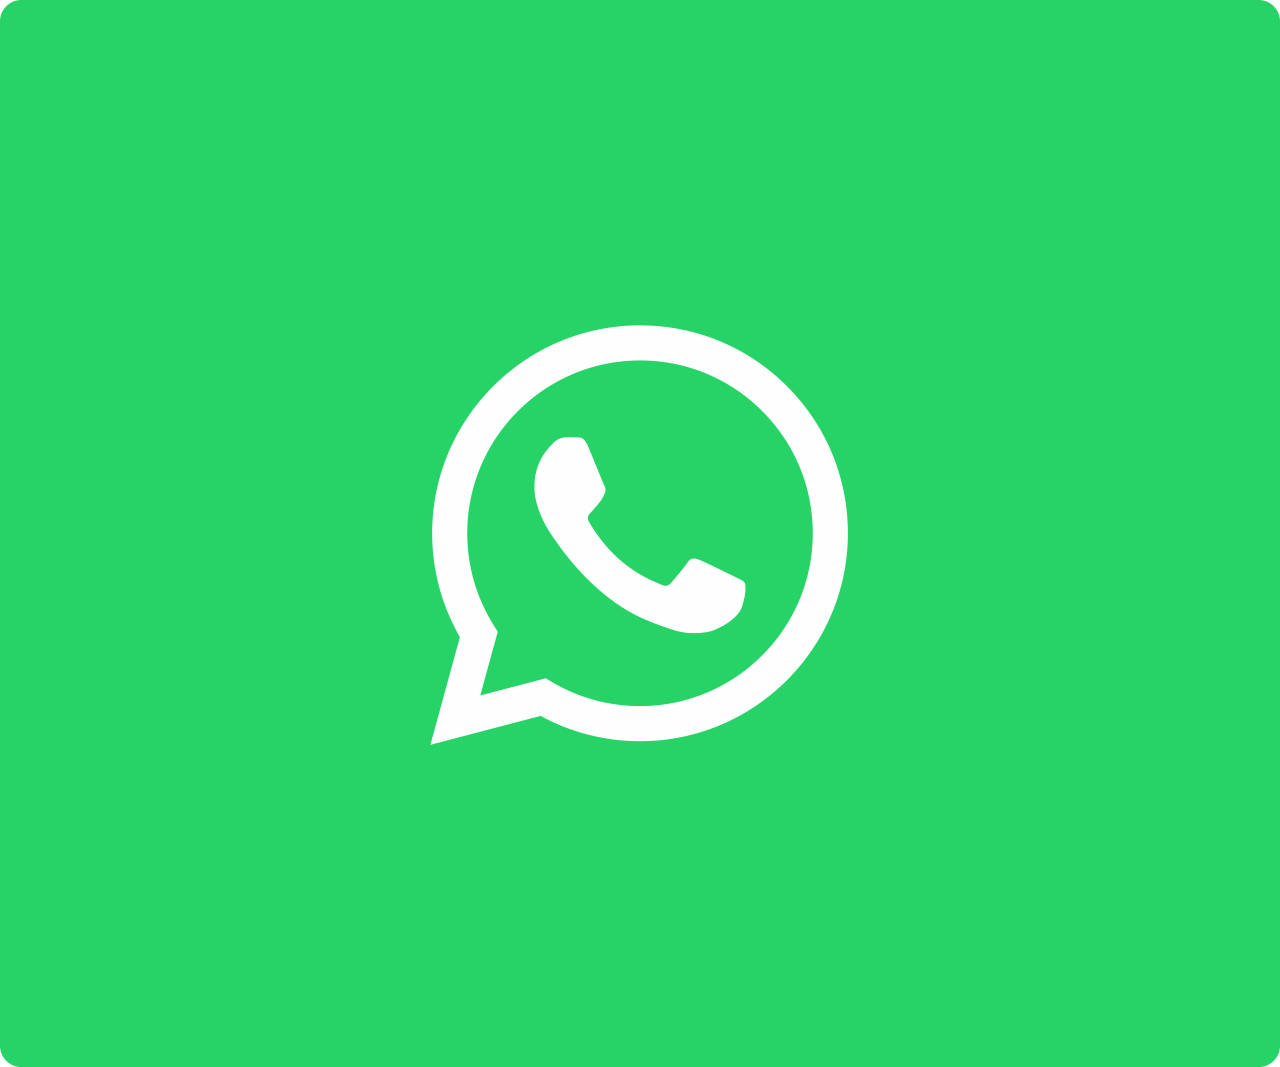 Descargar logo de whatsapp clipart stock WhatsApp Brand Resources stock